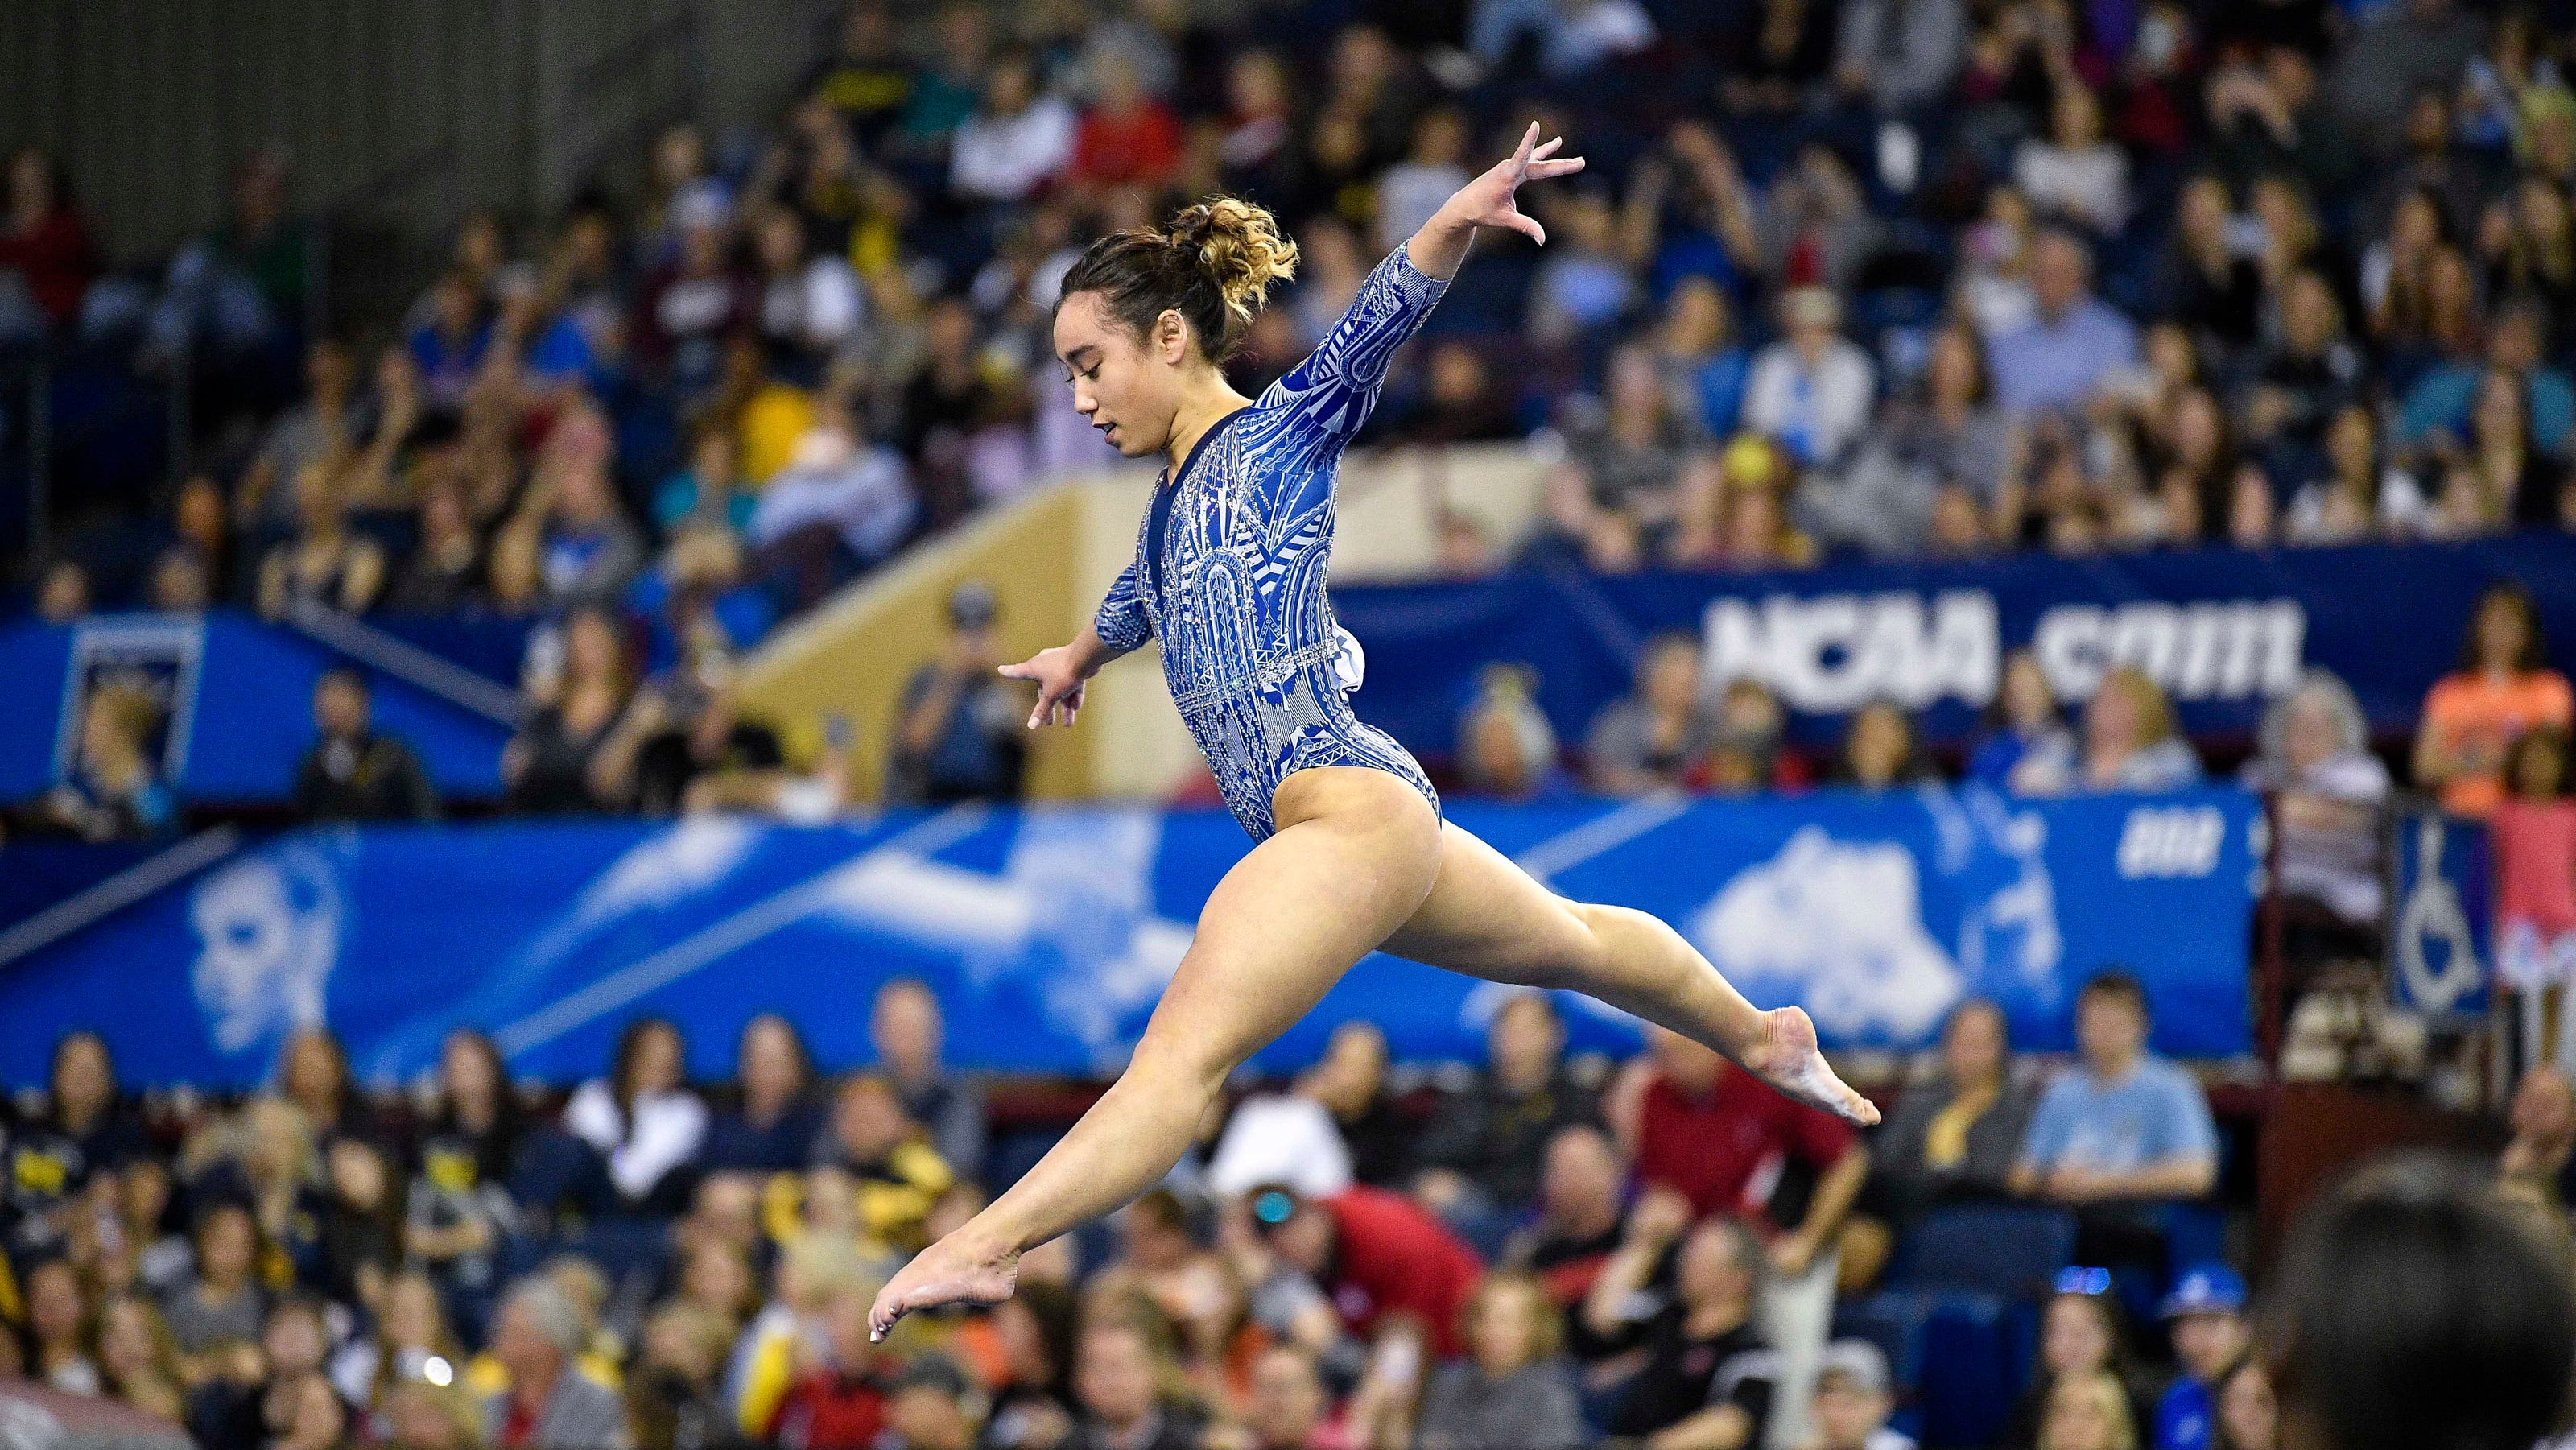 Katelyn Ohashi Net Worth: 5 Interesting Facts You Should Know